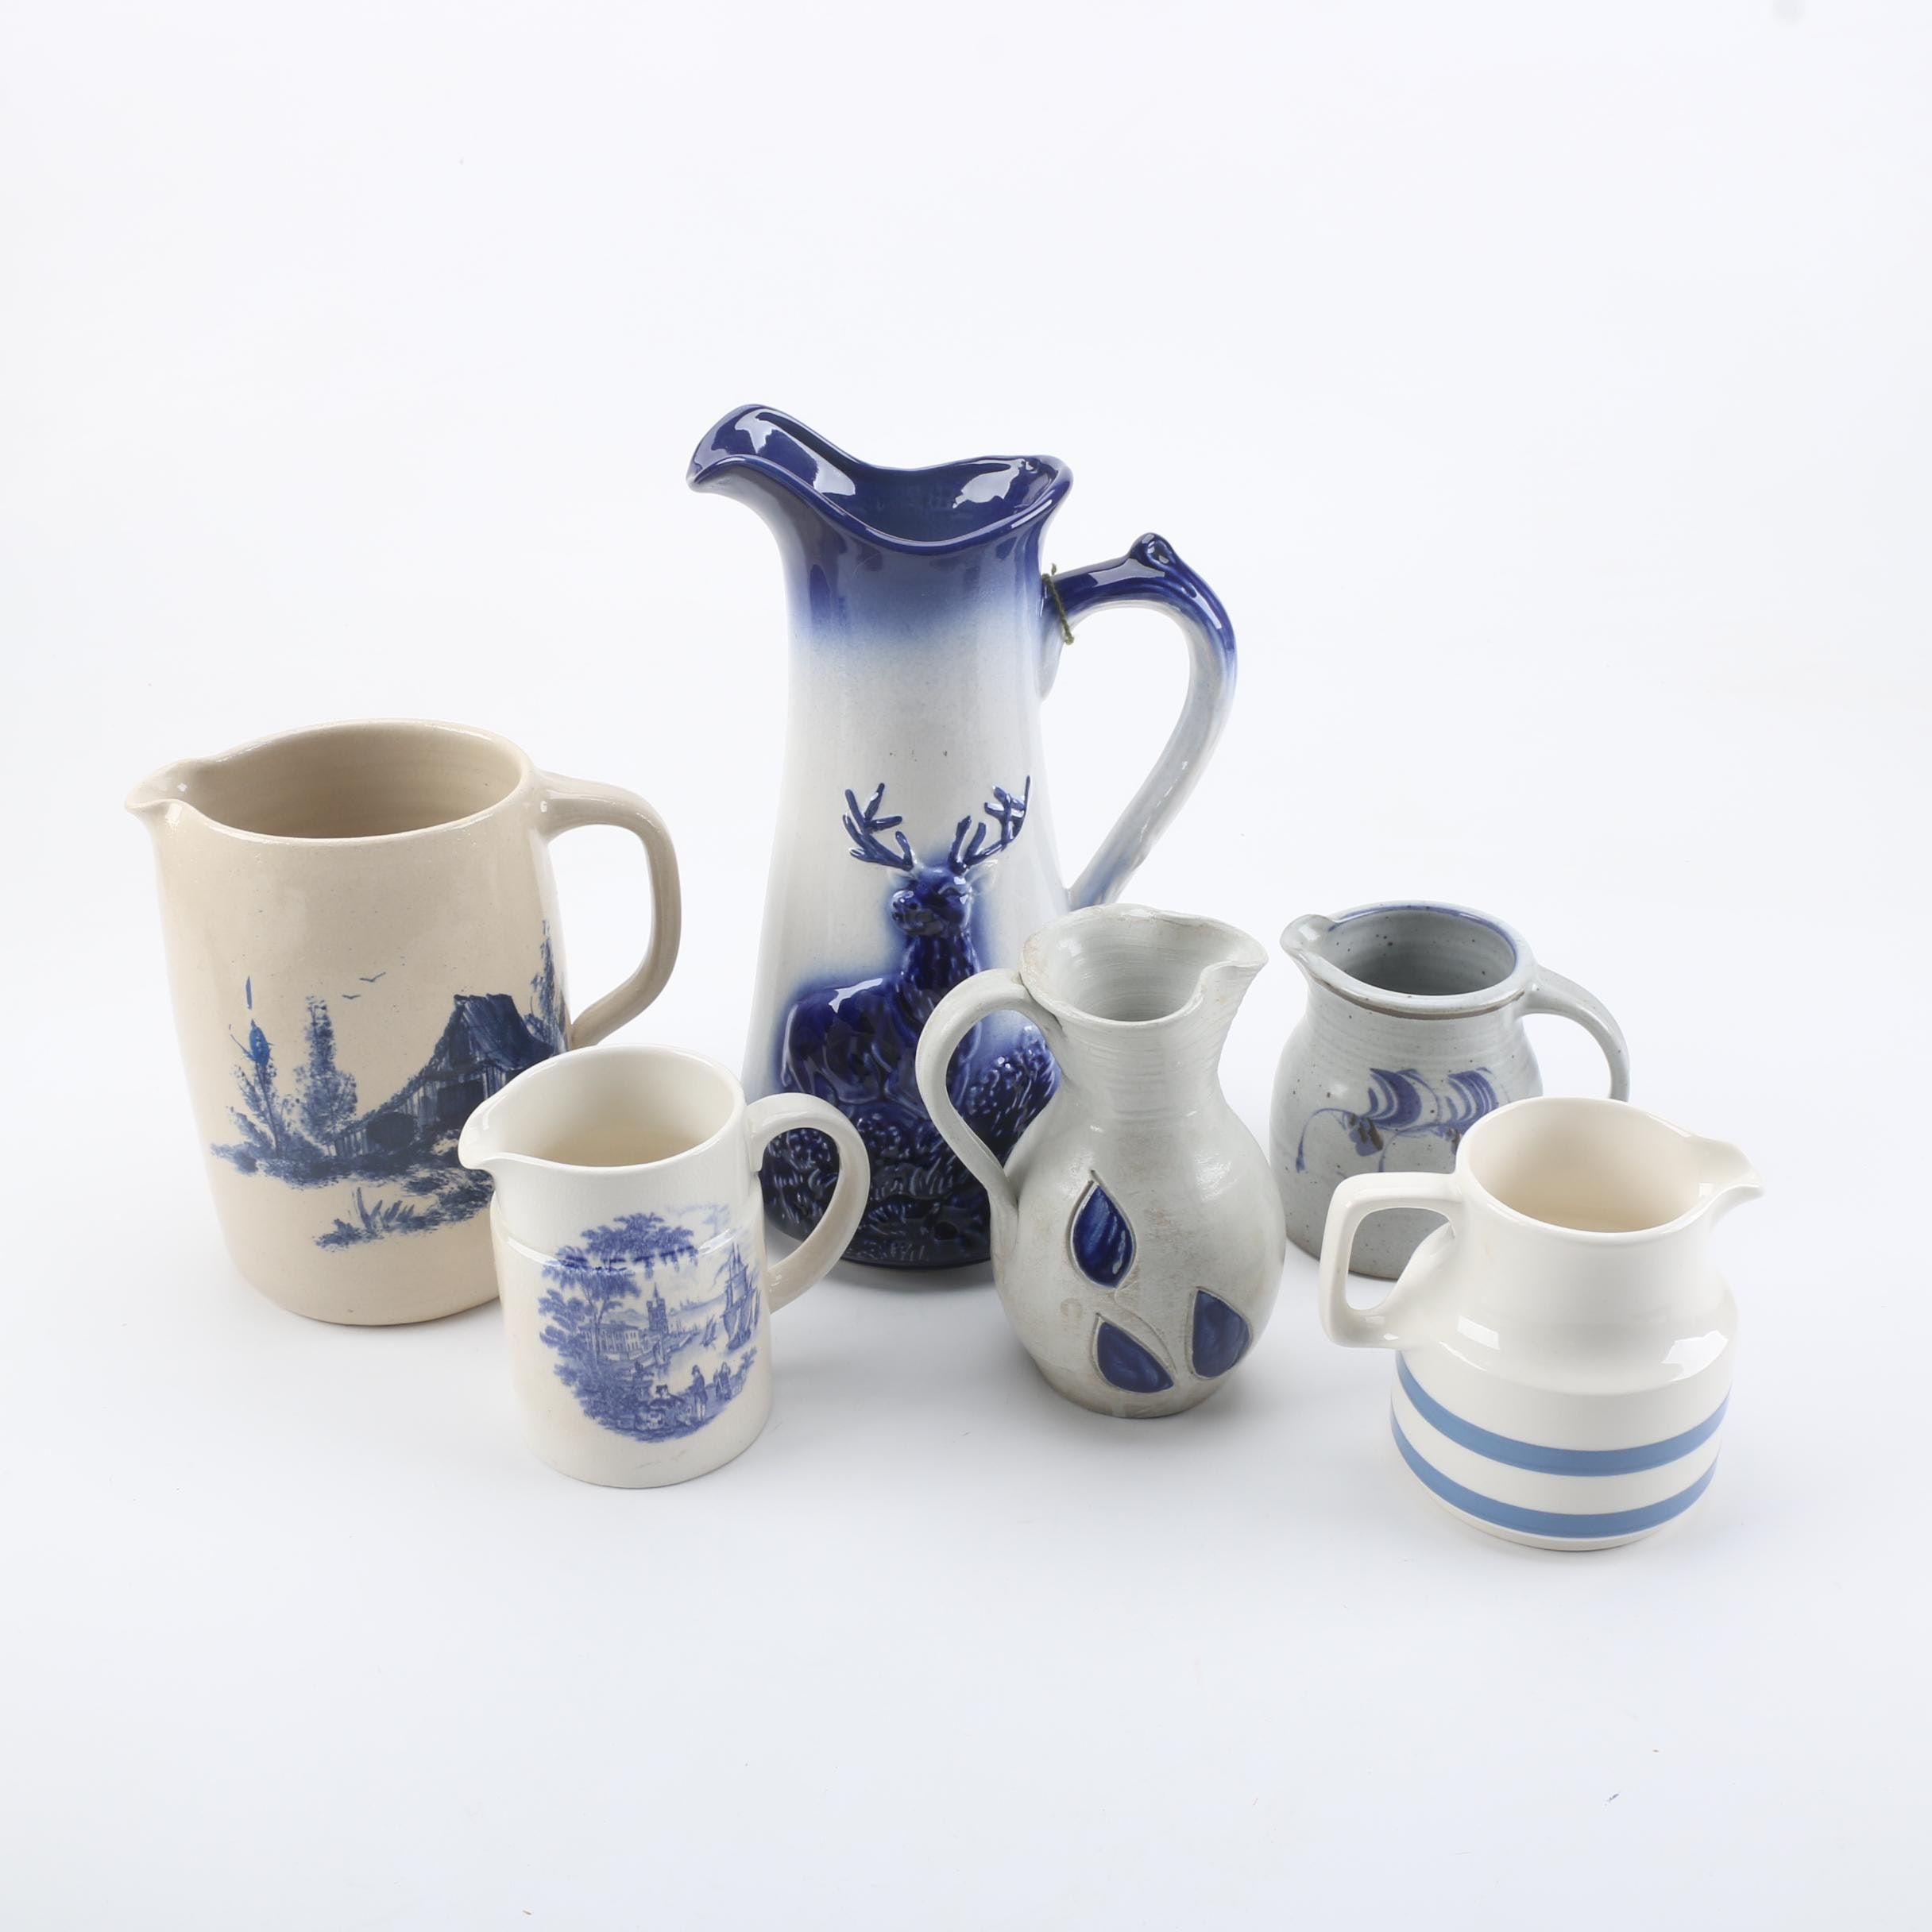 Ceramic and Art Pottery Pitchers